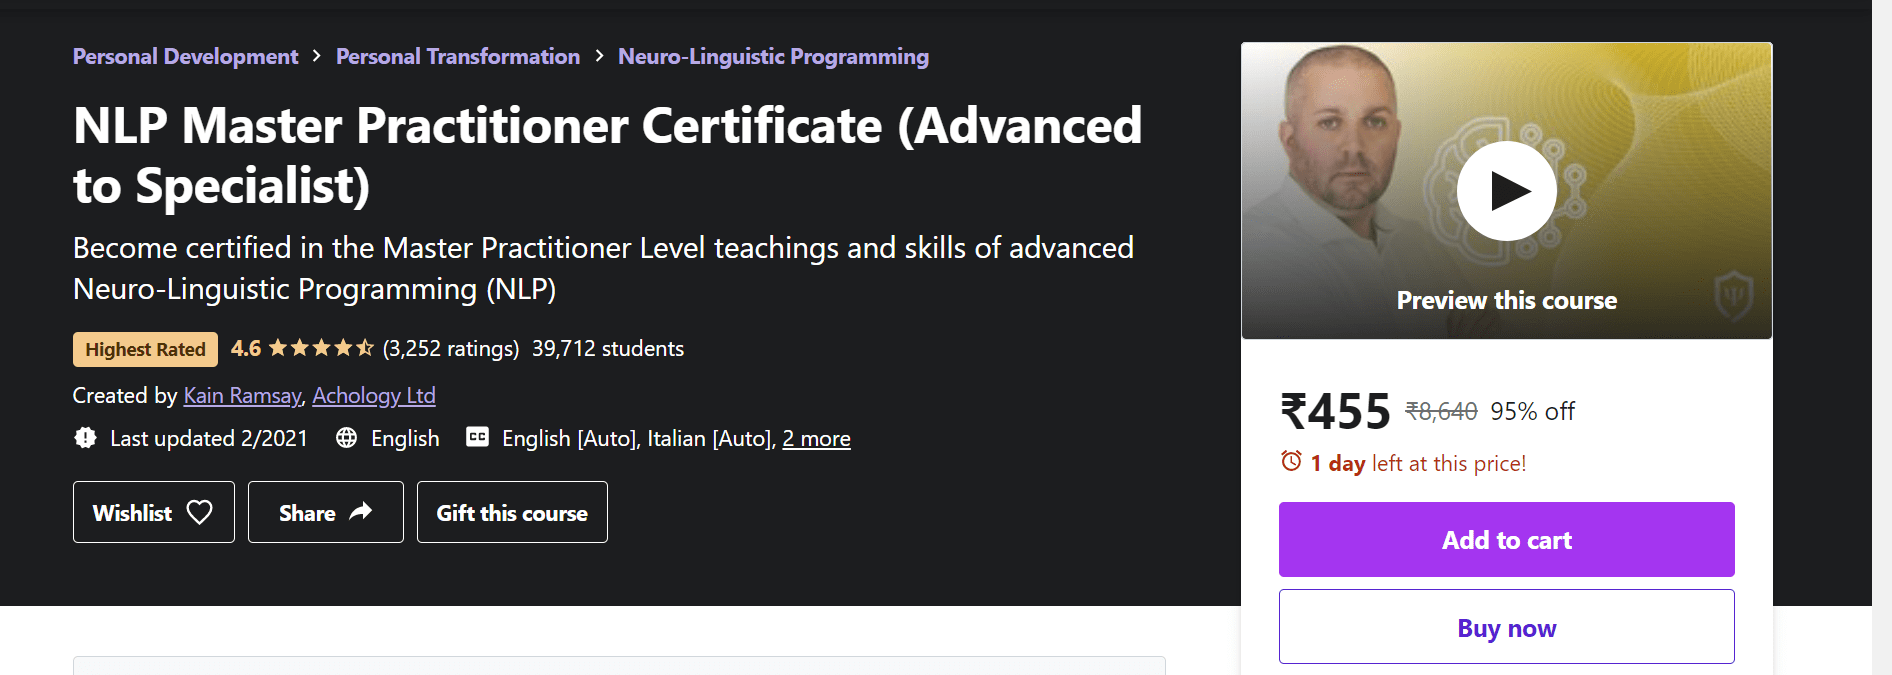 Best Best NLP Training Courses - NLP Master Practitioner Certificate (Advance to Specialist)